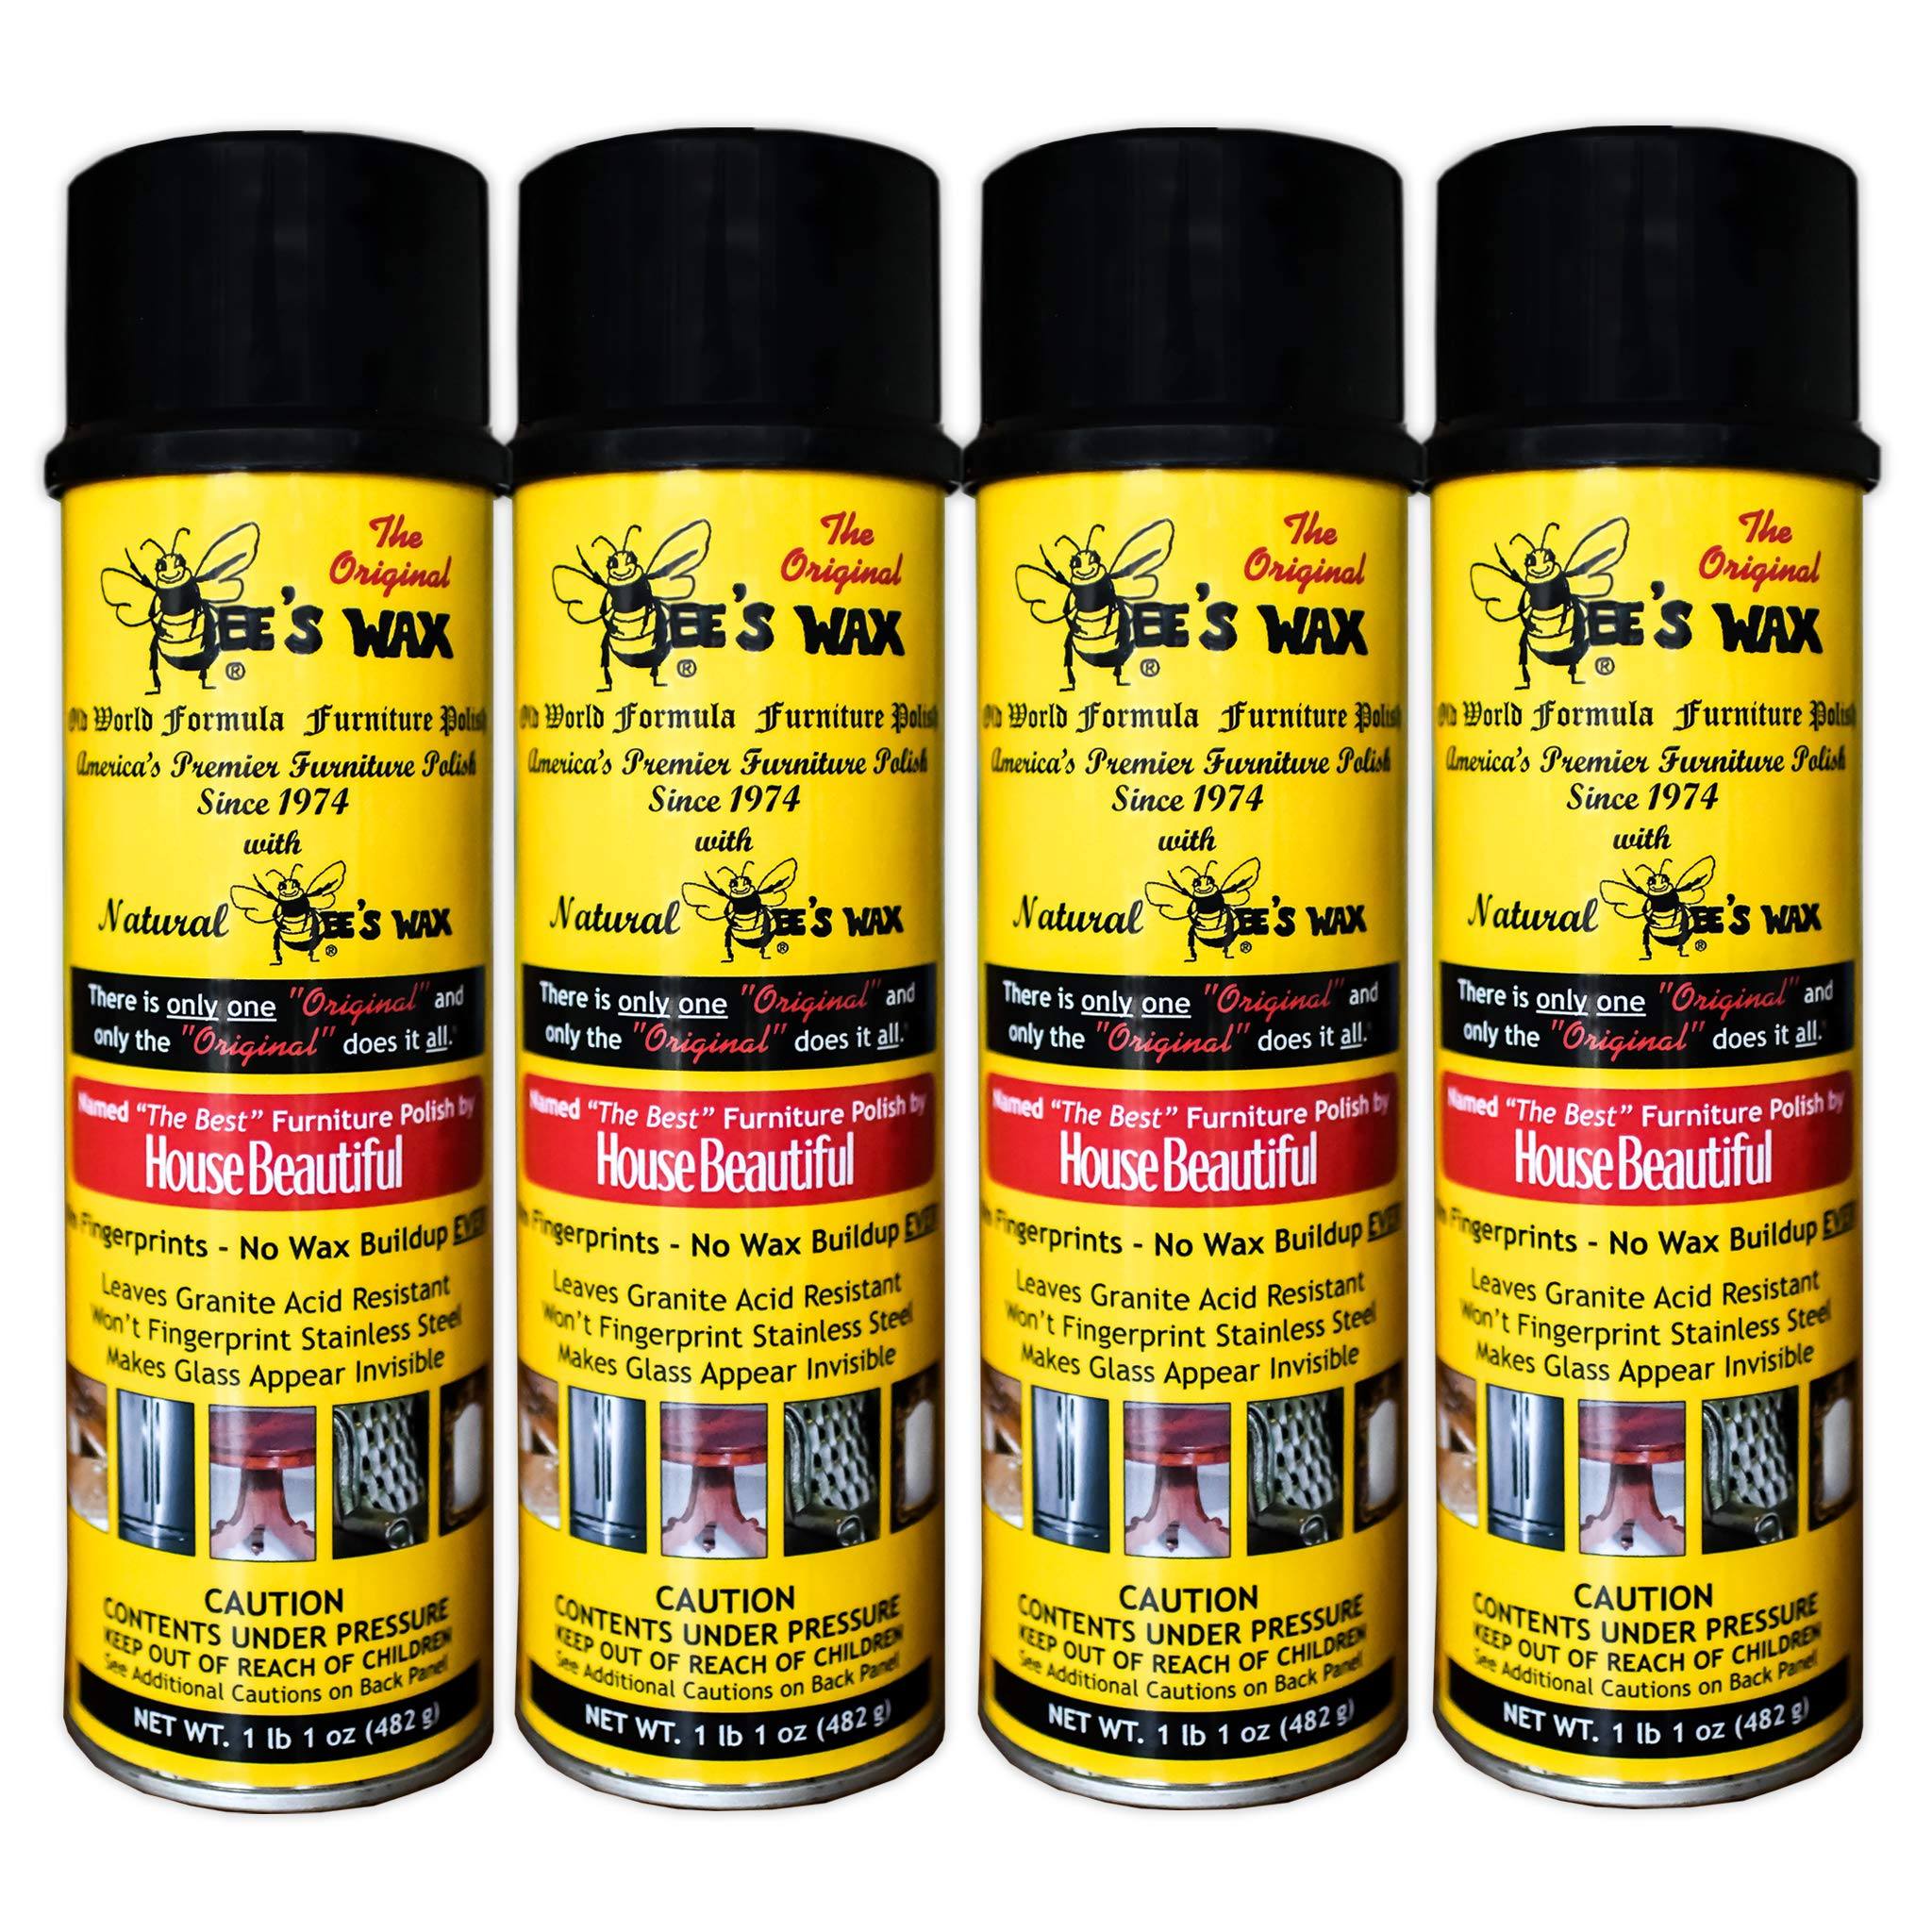 The Original BEE'S WAX Old World Formula Furniture Polish - 4 Pack by World Class Promotions